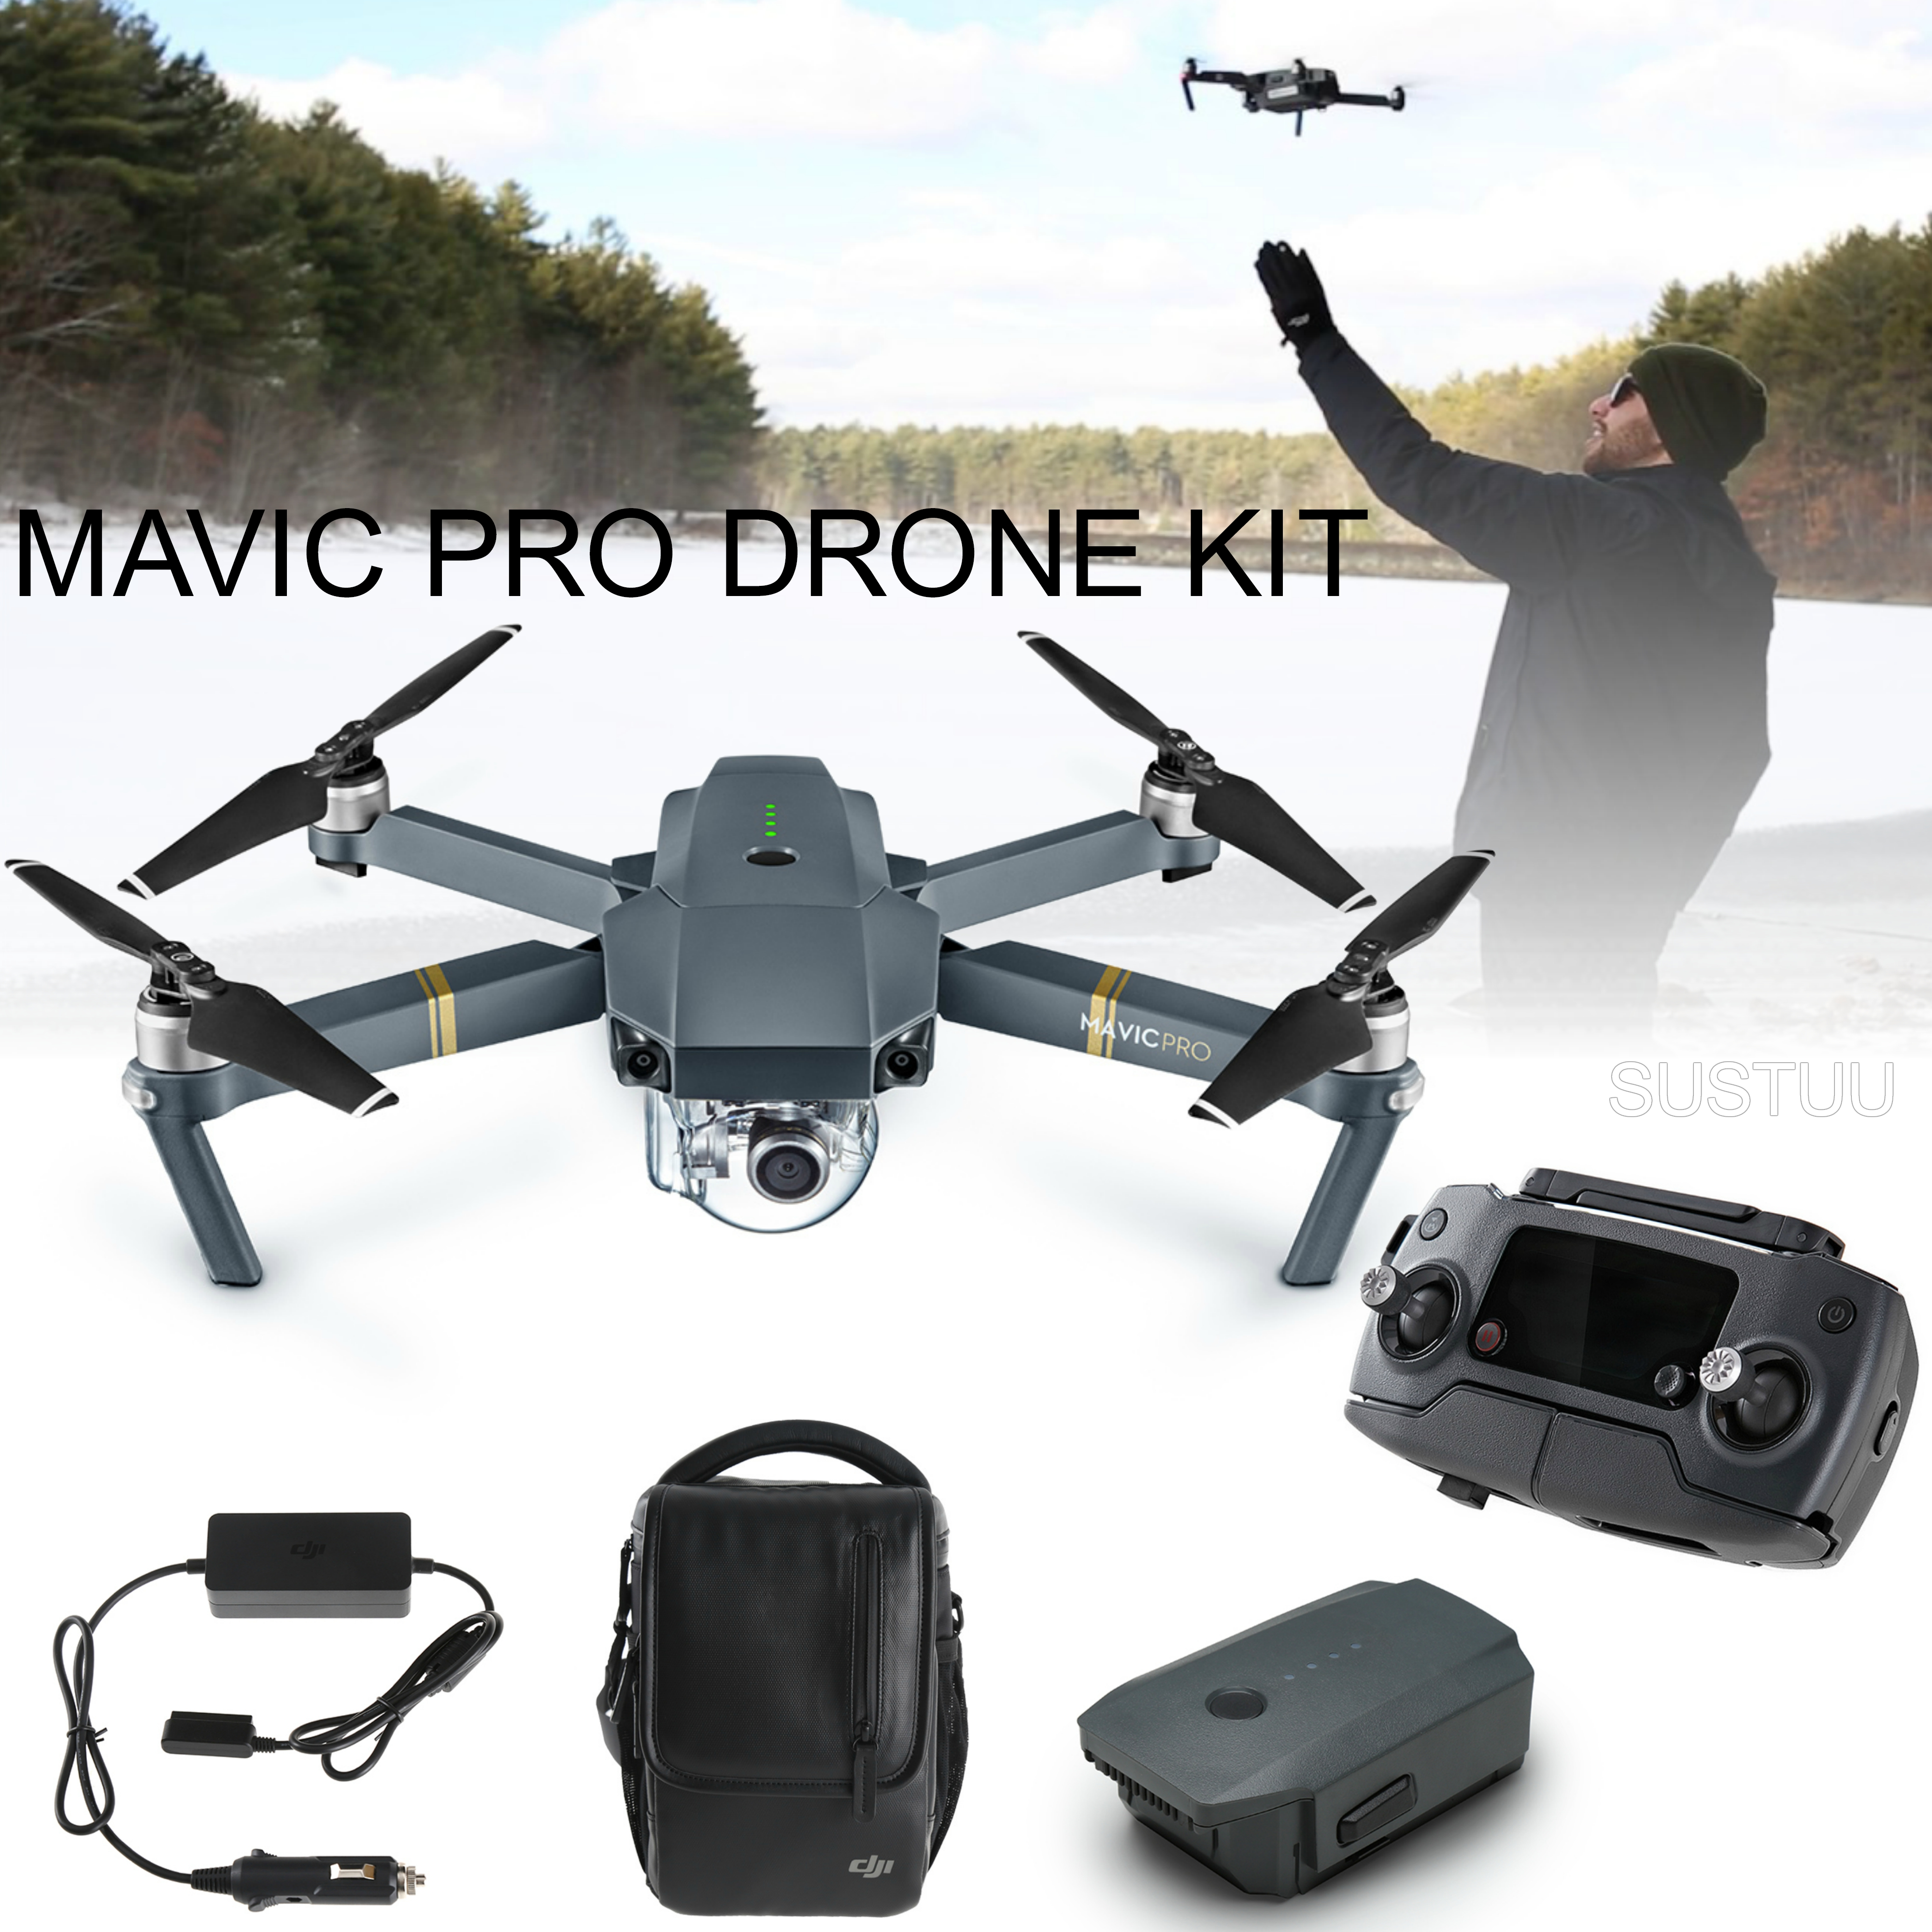 New DJI Mavic Pro Drone Combo Kit|4K Camera|12MP|1080p HD|5 Vision Sensor|3-axis Gimbal|Compact & Powerful